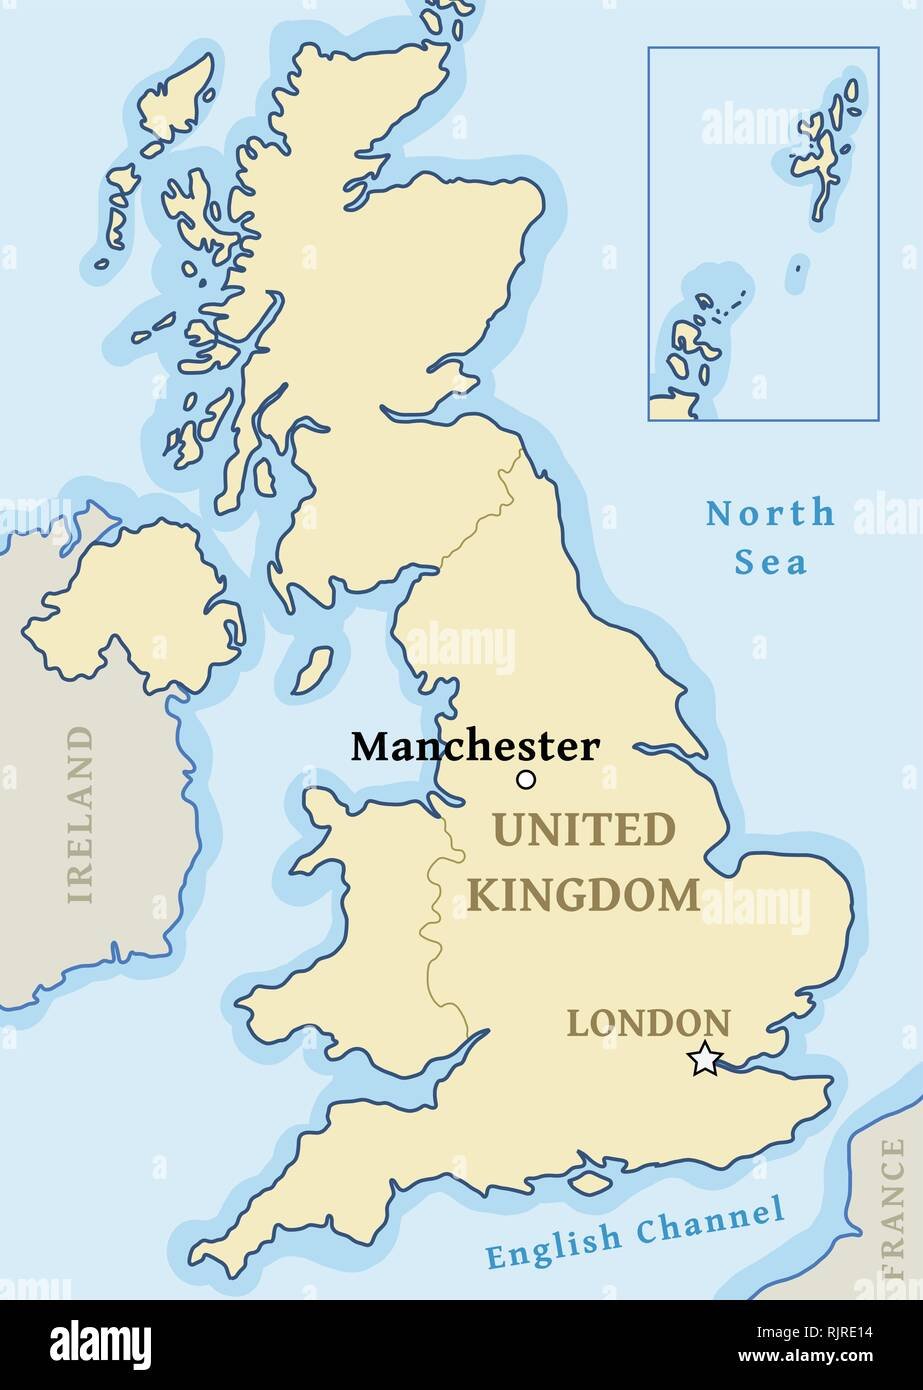 Manchester map location - city marked in United Kingdom (UK ...